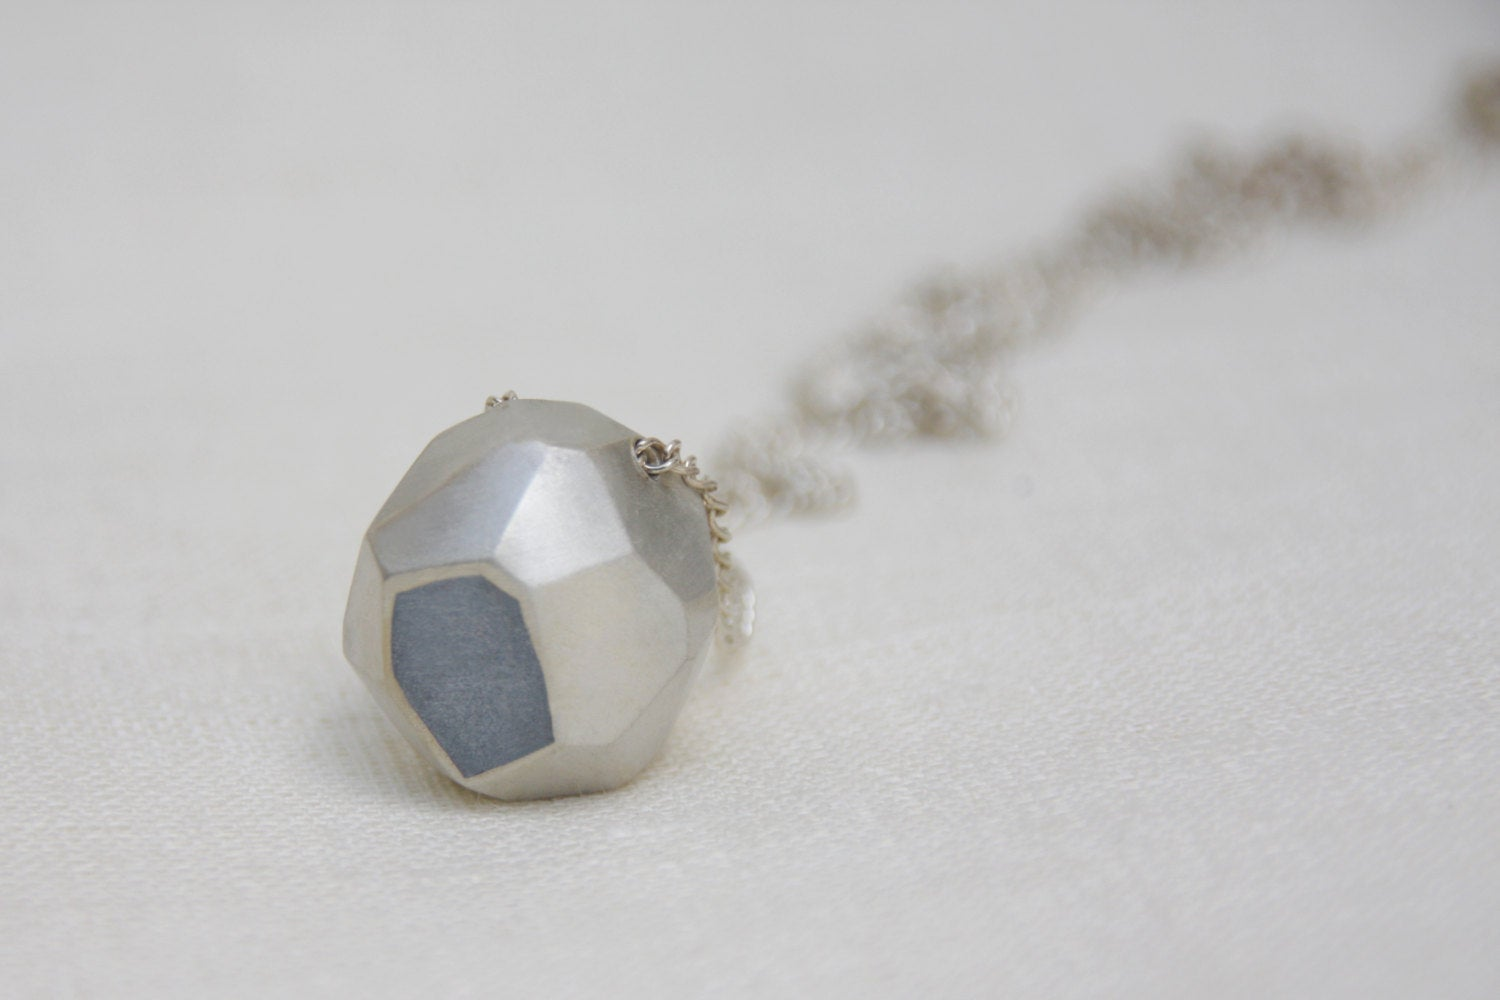 Cement Jewelry / Gold concrete necklace Pendant / Minimalist long necklace / Concrete jewelry - hs